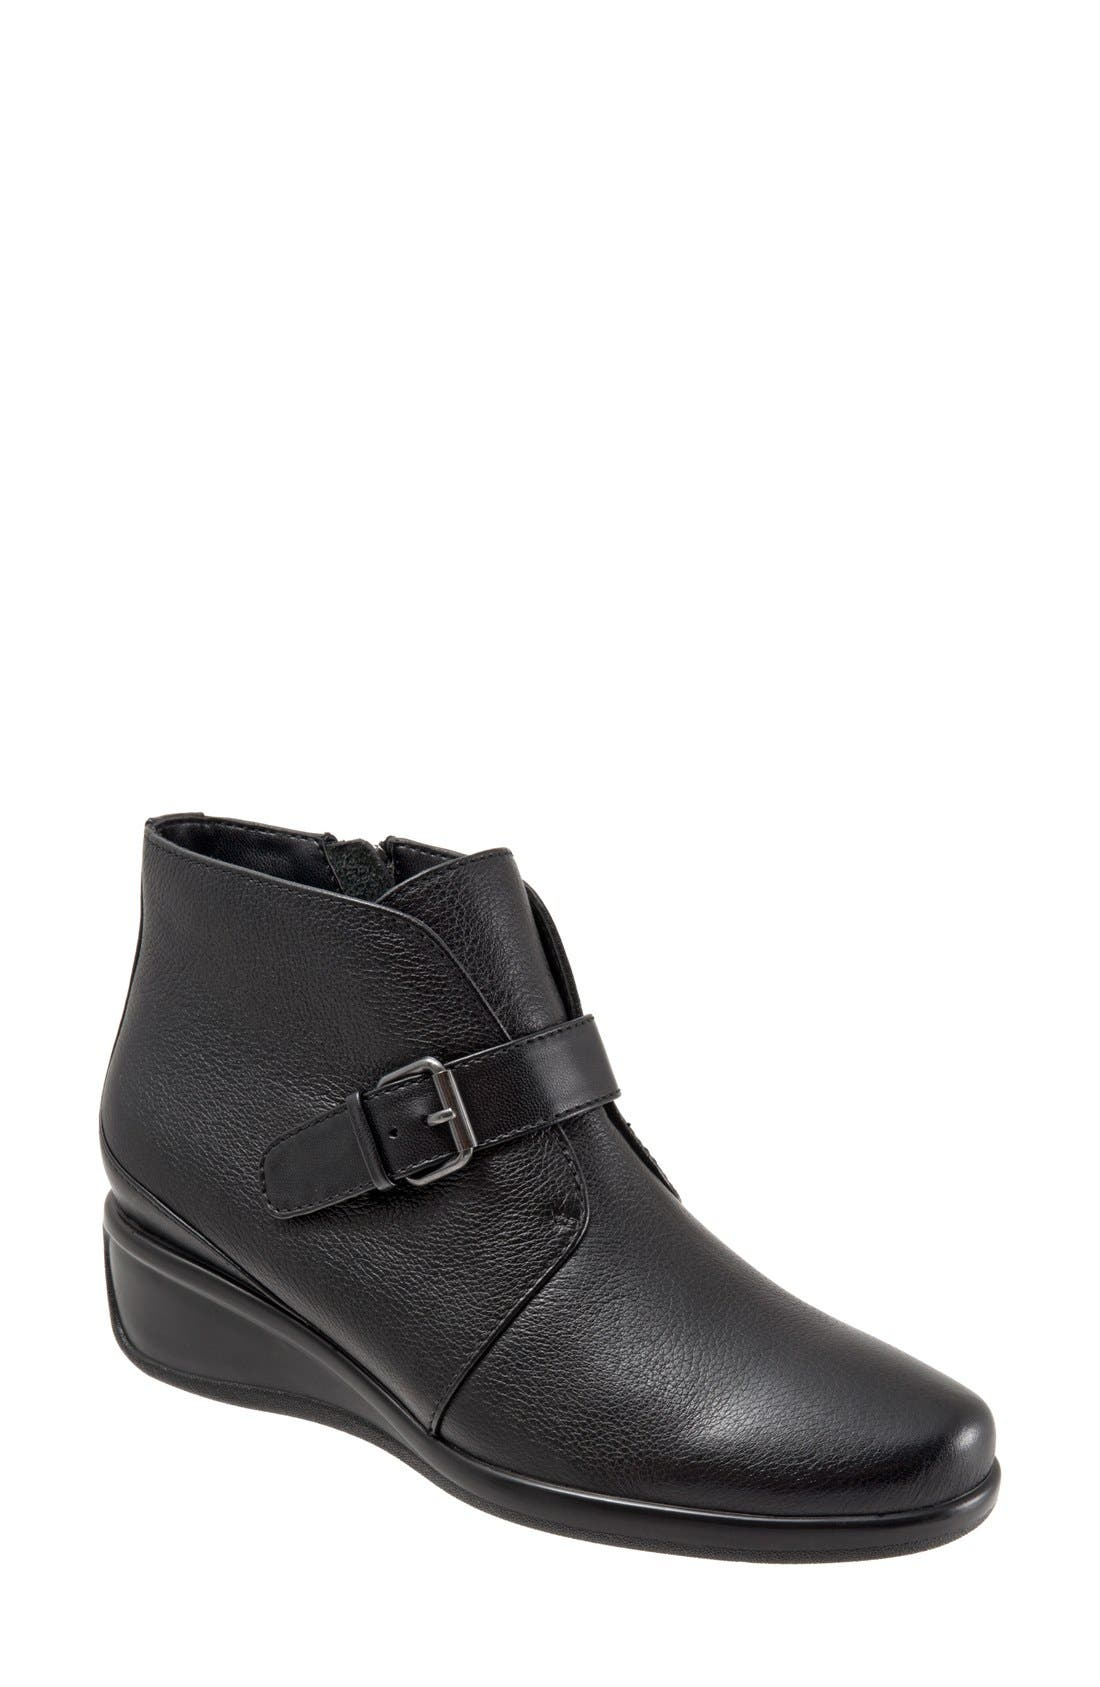 Main Image - Trotters 'Mindy' Wedge Bootie (Women)